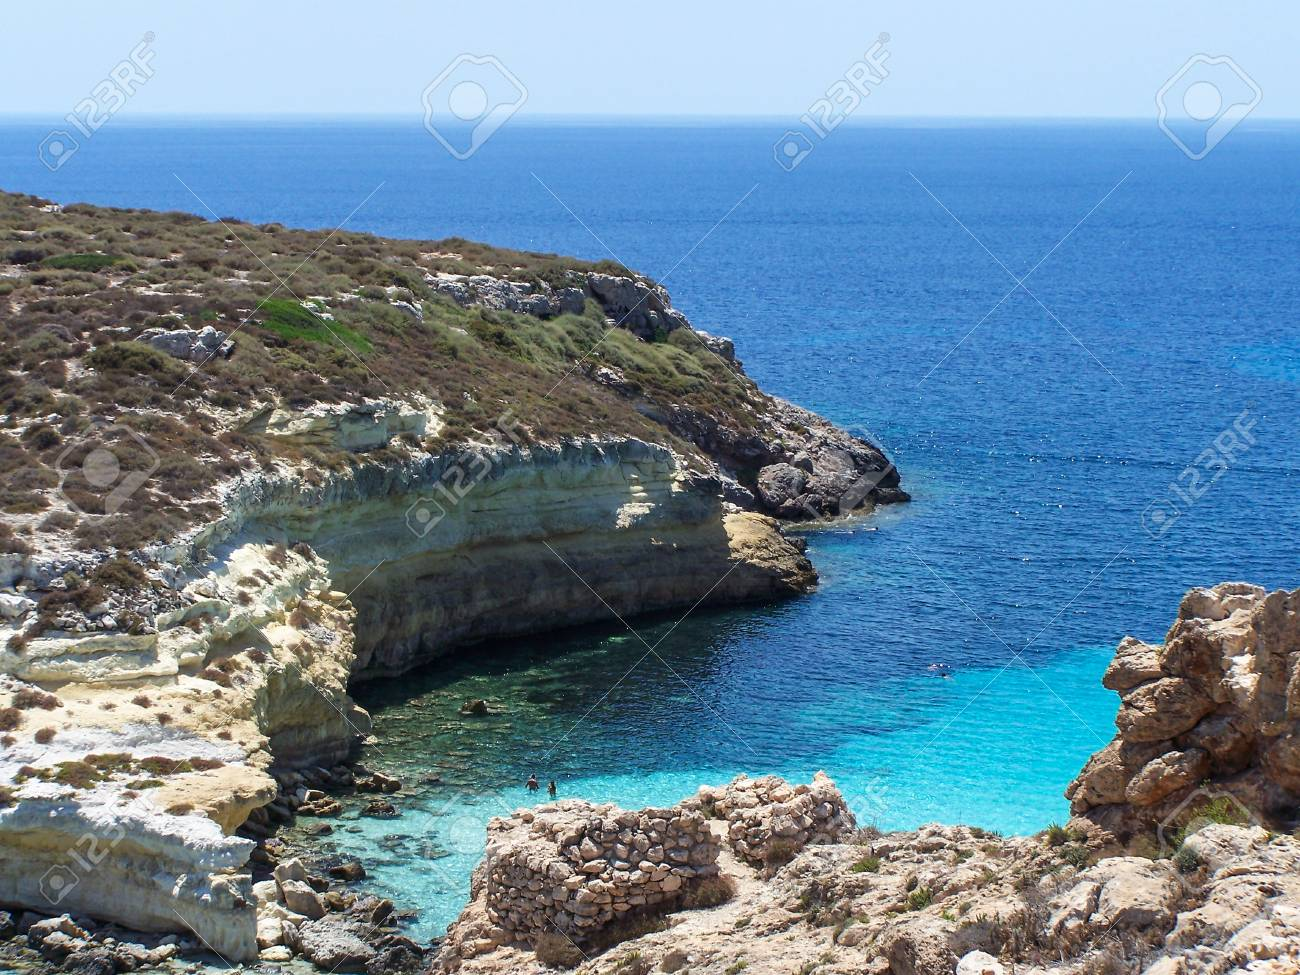 Island Of Lampedusa Sicily Italy Stock Photo Picture And Royalty